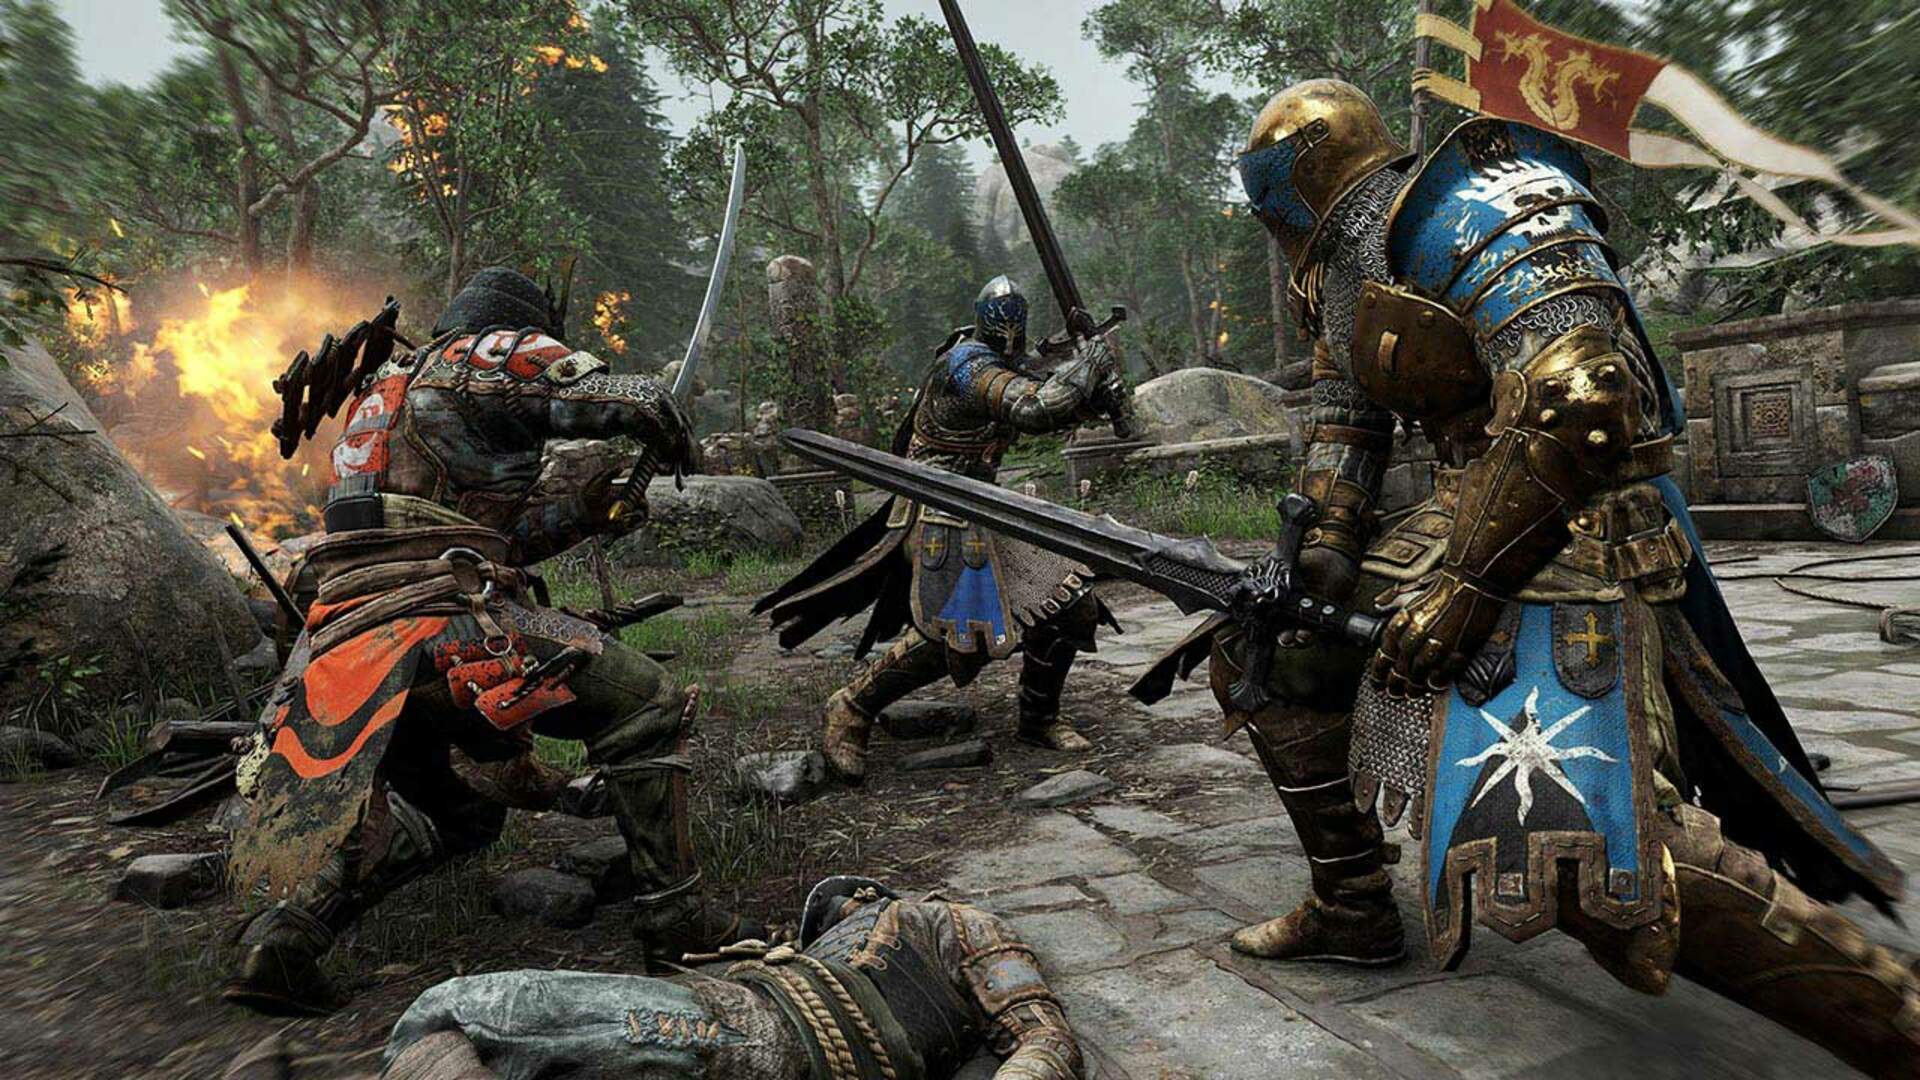 For Honor Will Get a Free 60 FPS Update on PS5, Xbox Series X, and Xbox Series S